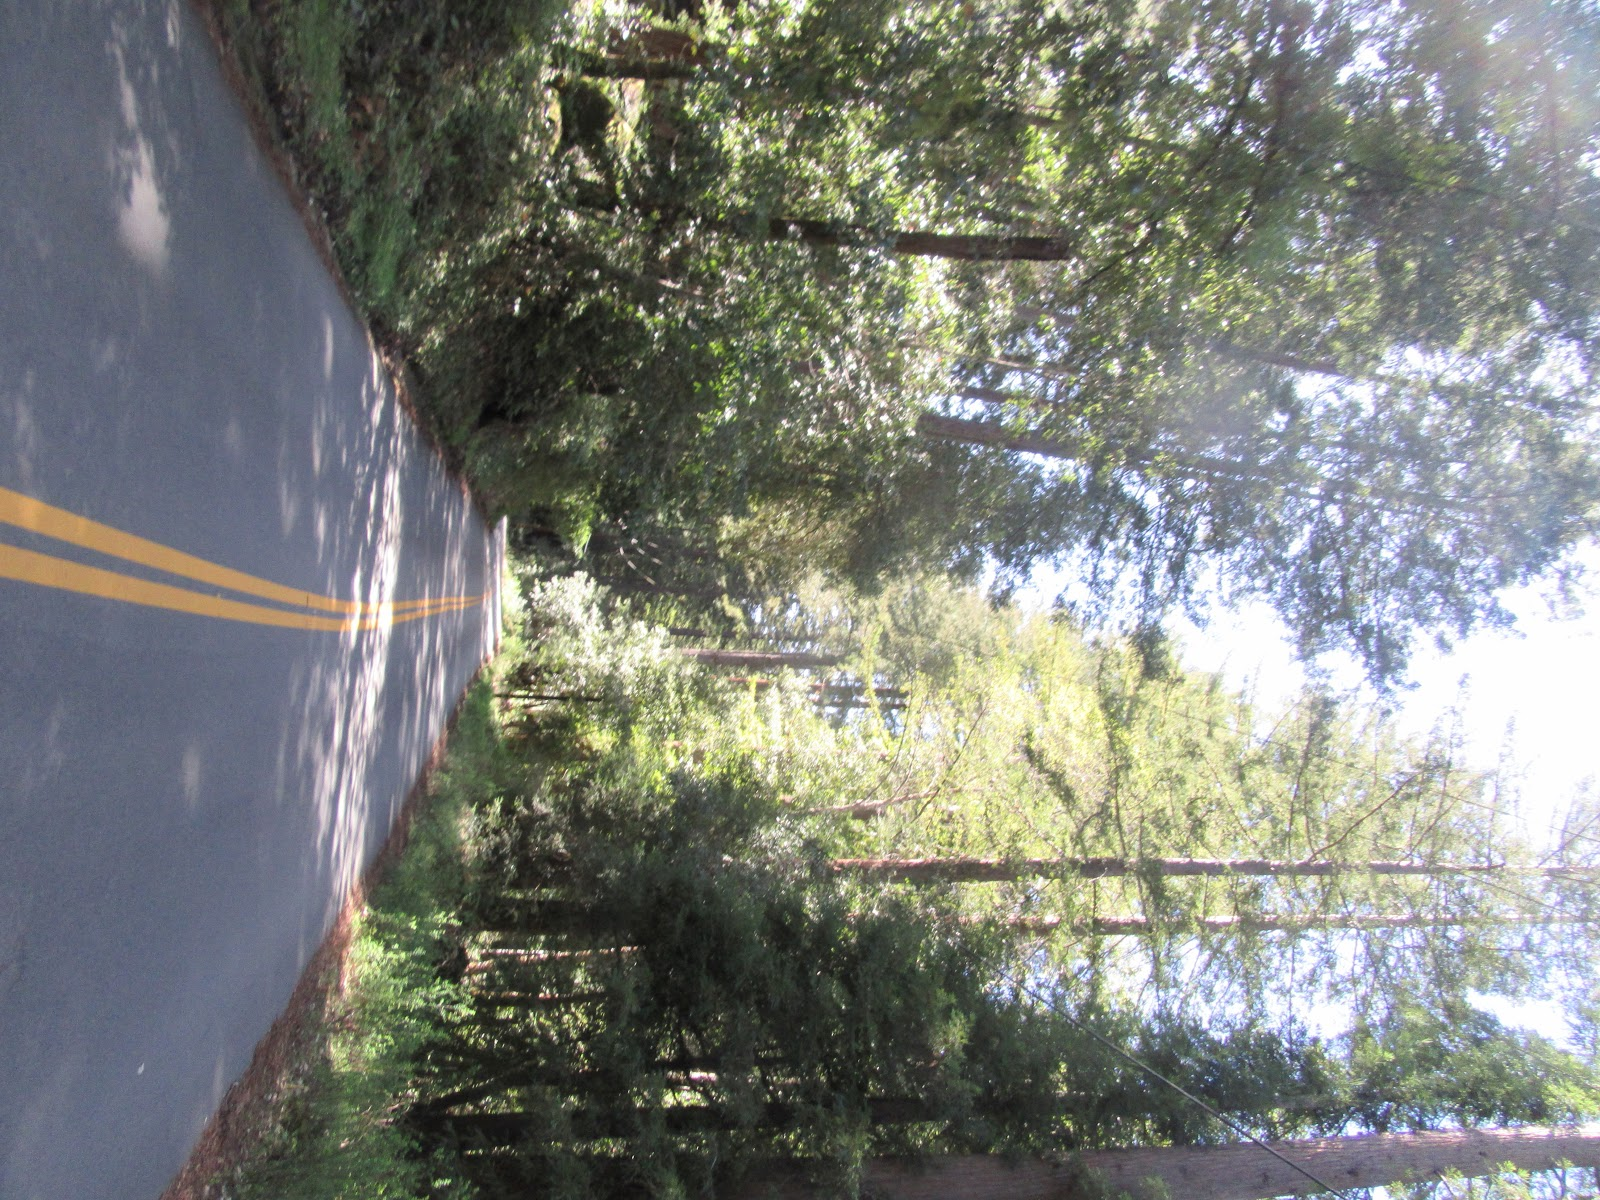 Climbing Jamison Road  by bike - roadway bordered by redwood trees